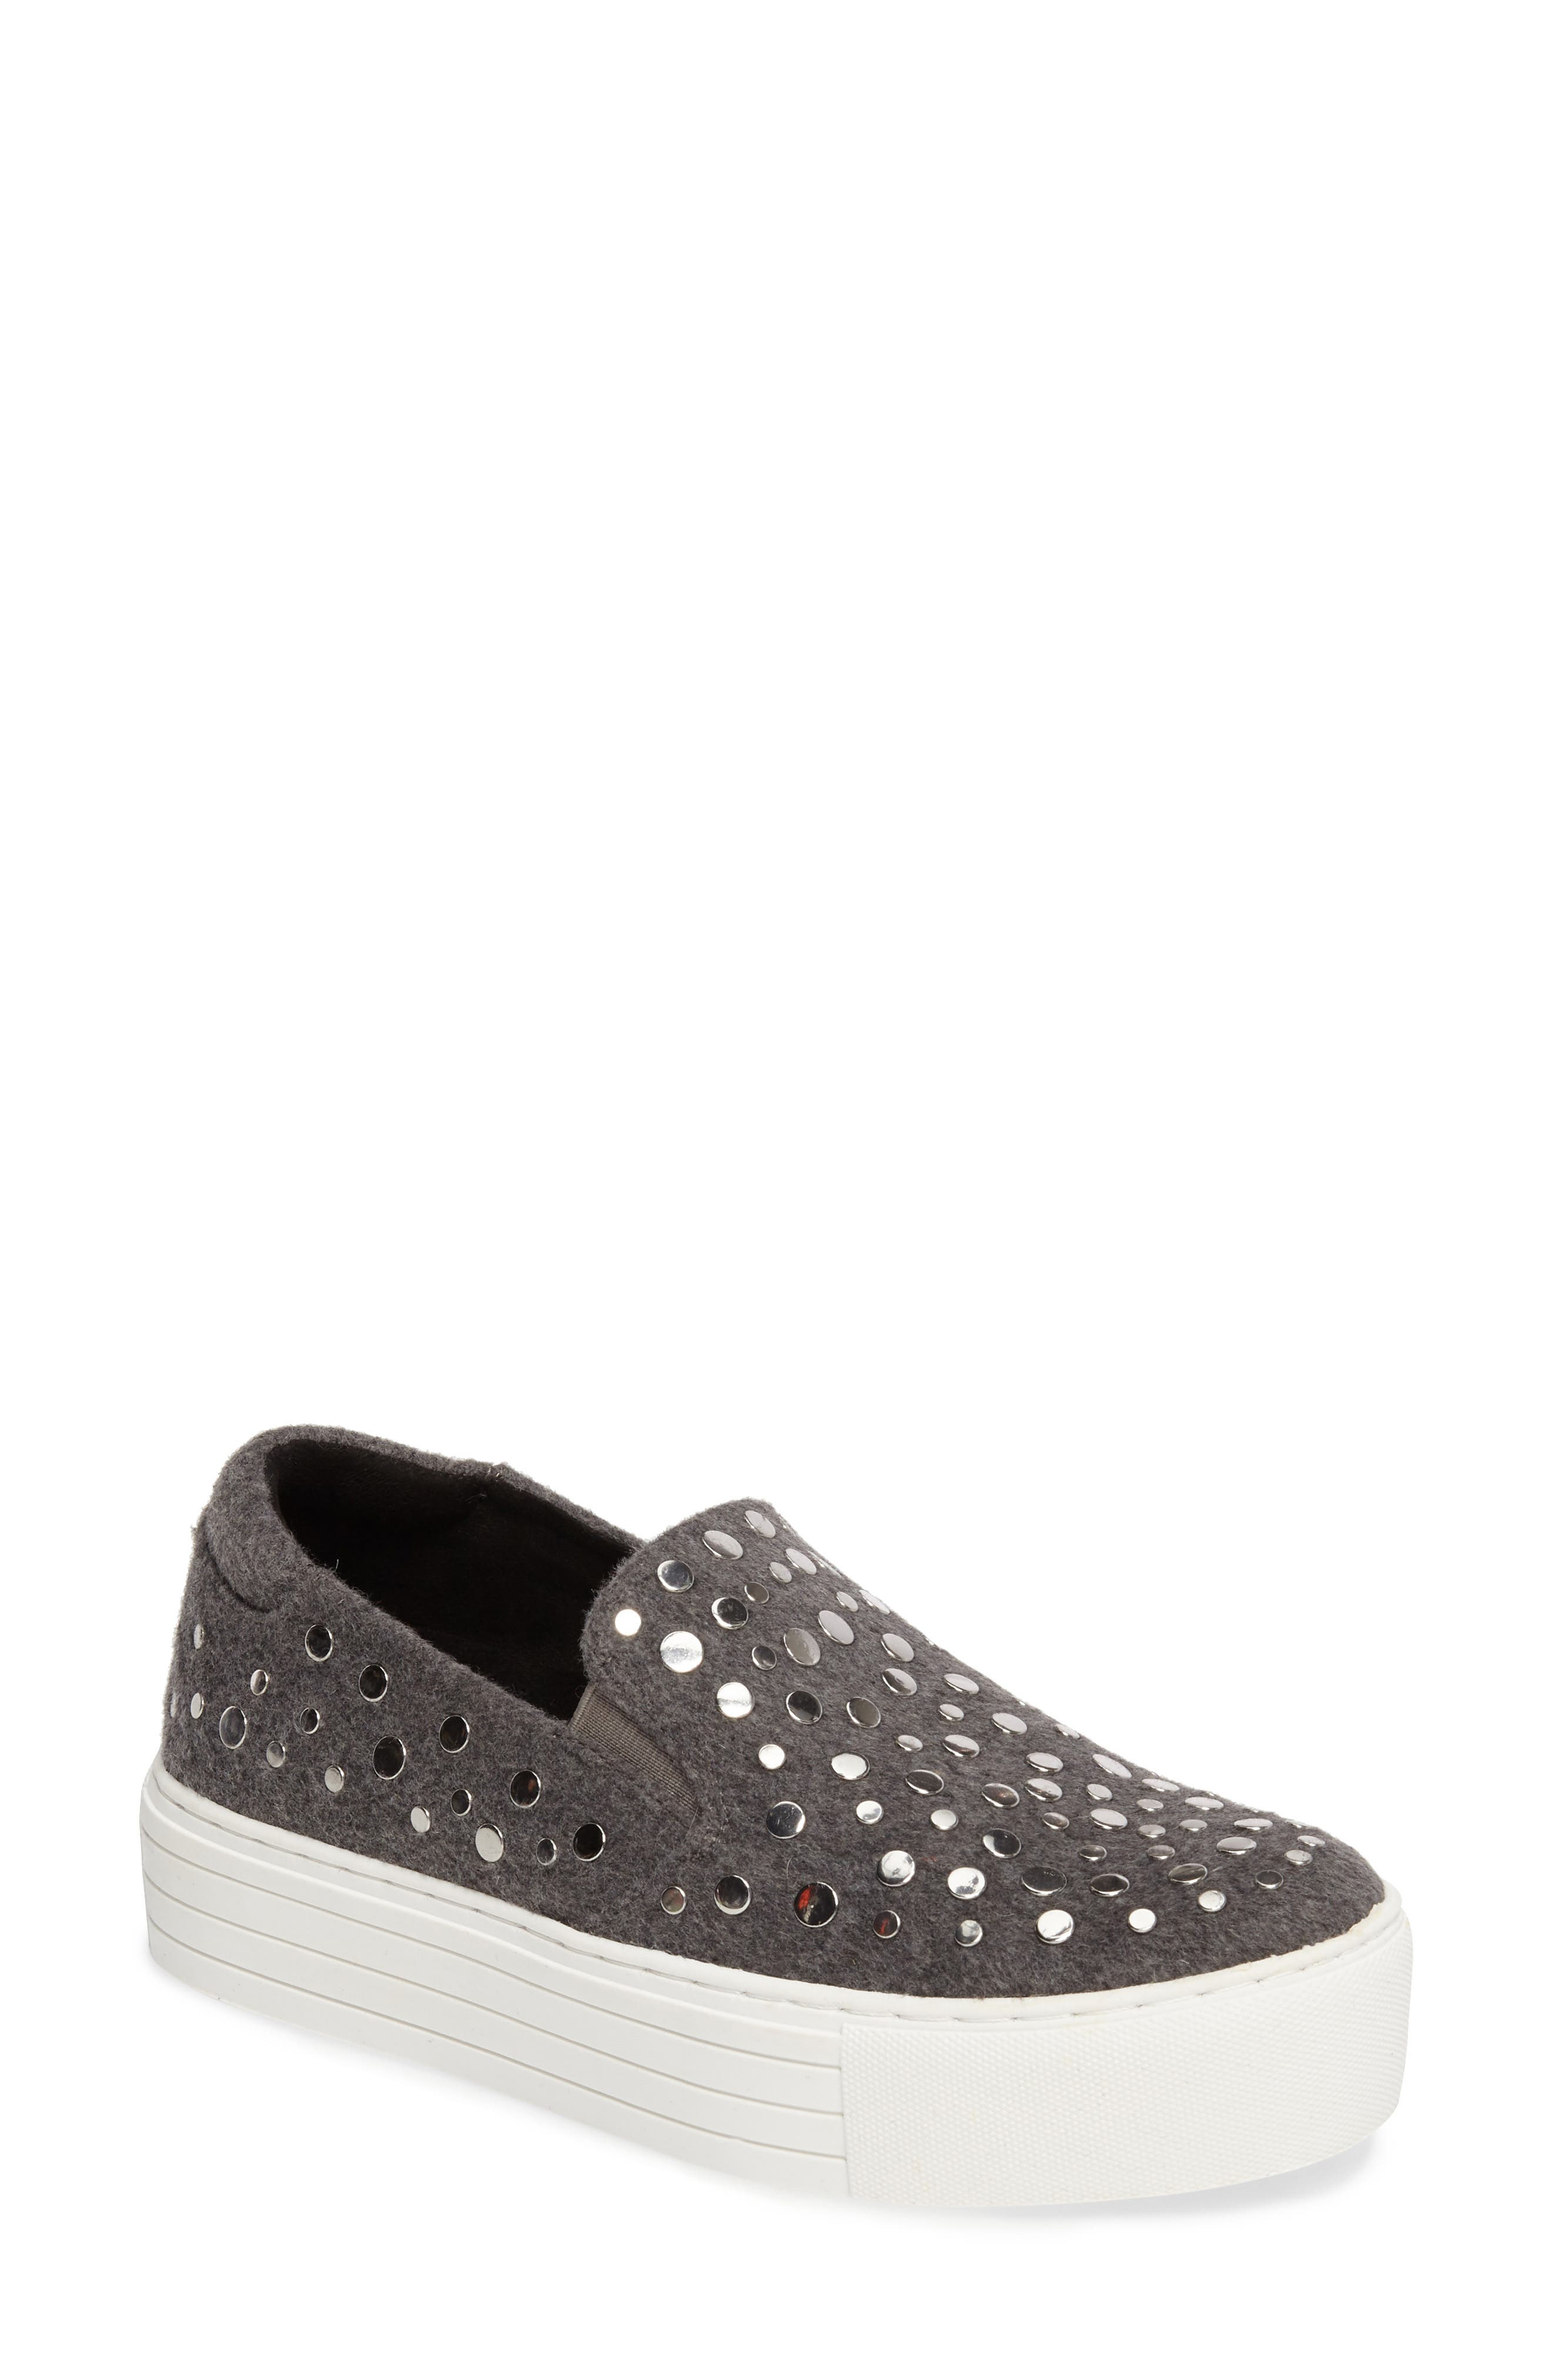 Jeyda Slip-On Sneaker,                         Main,                         color, Grey Felt Fabric